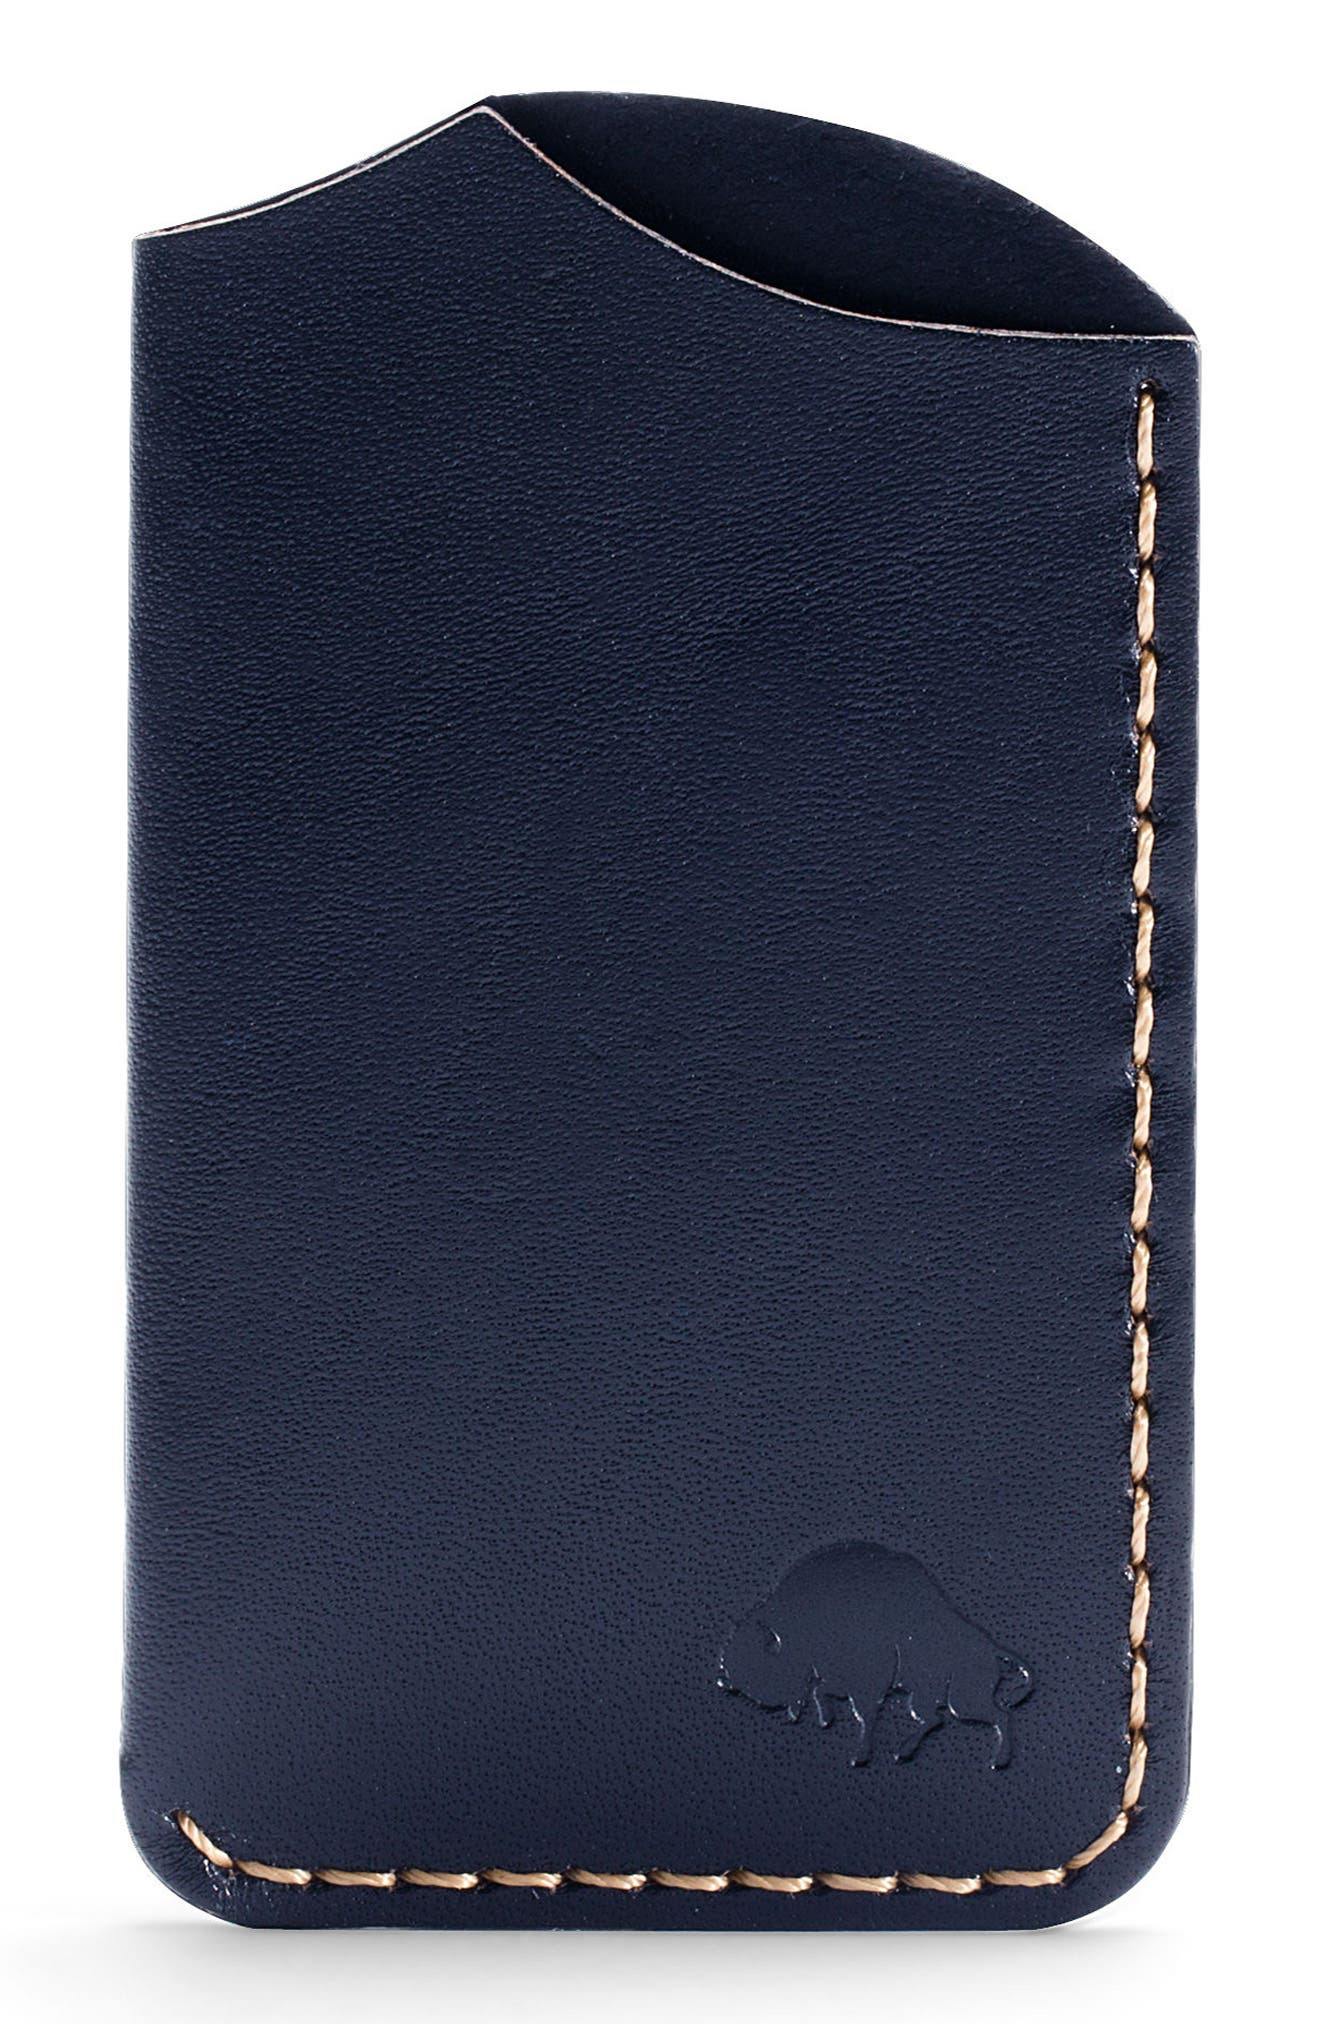 No. 1 Leather Card Case